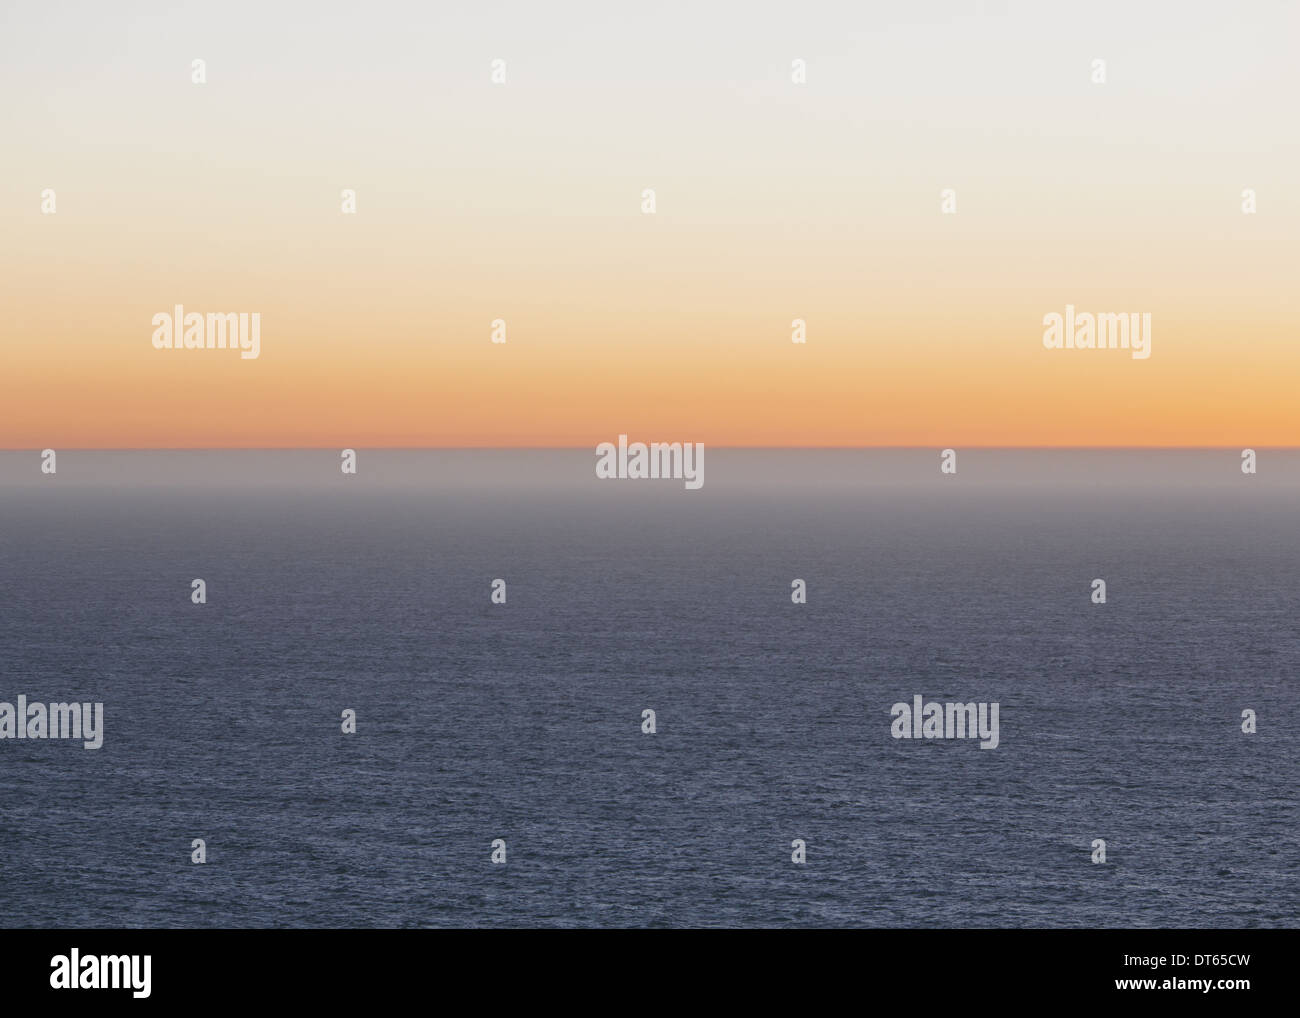 A view over the Pacific Ocean and the sunset on the horizon. - Stock Image